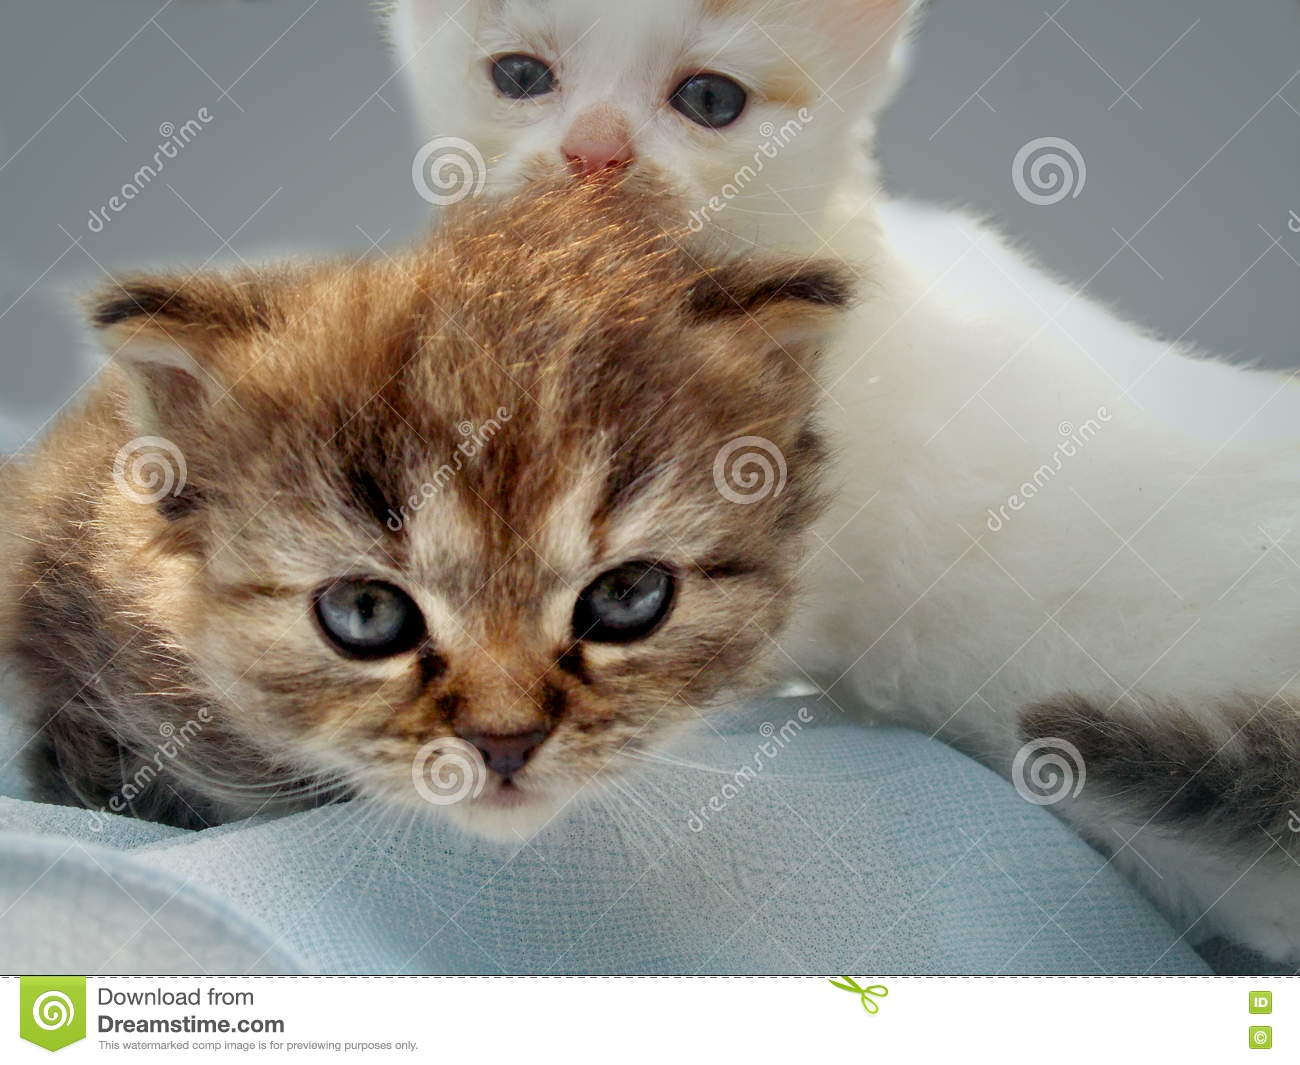 Cute small kittens stock photo Image of look cute light